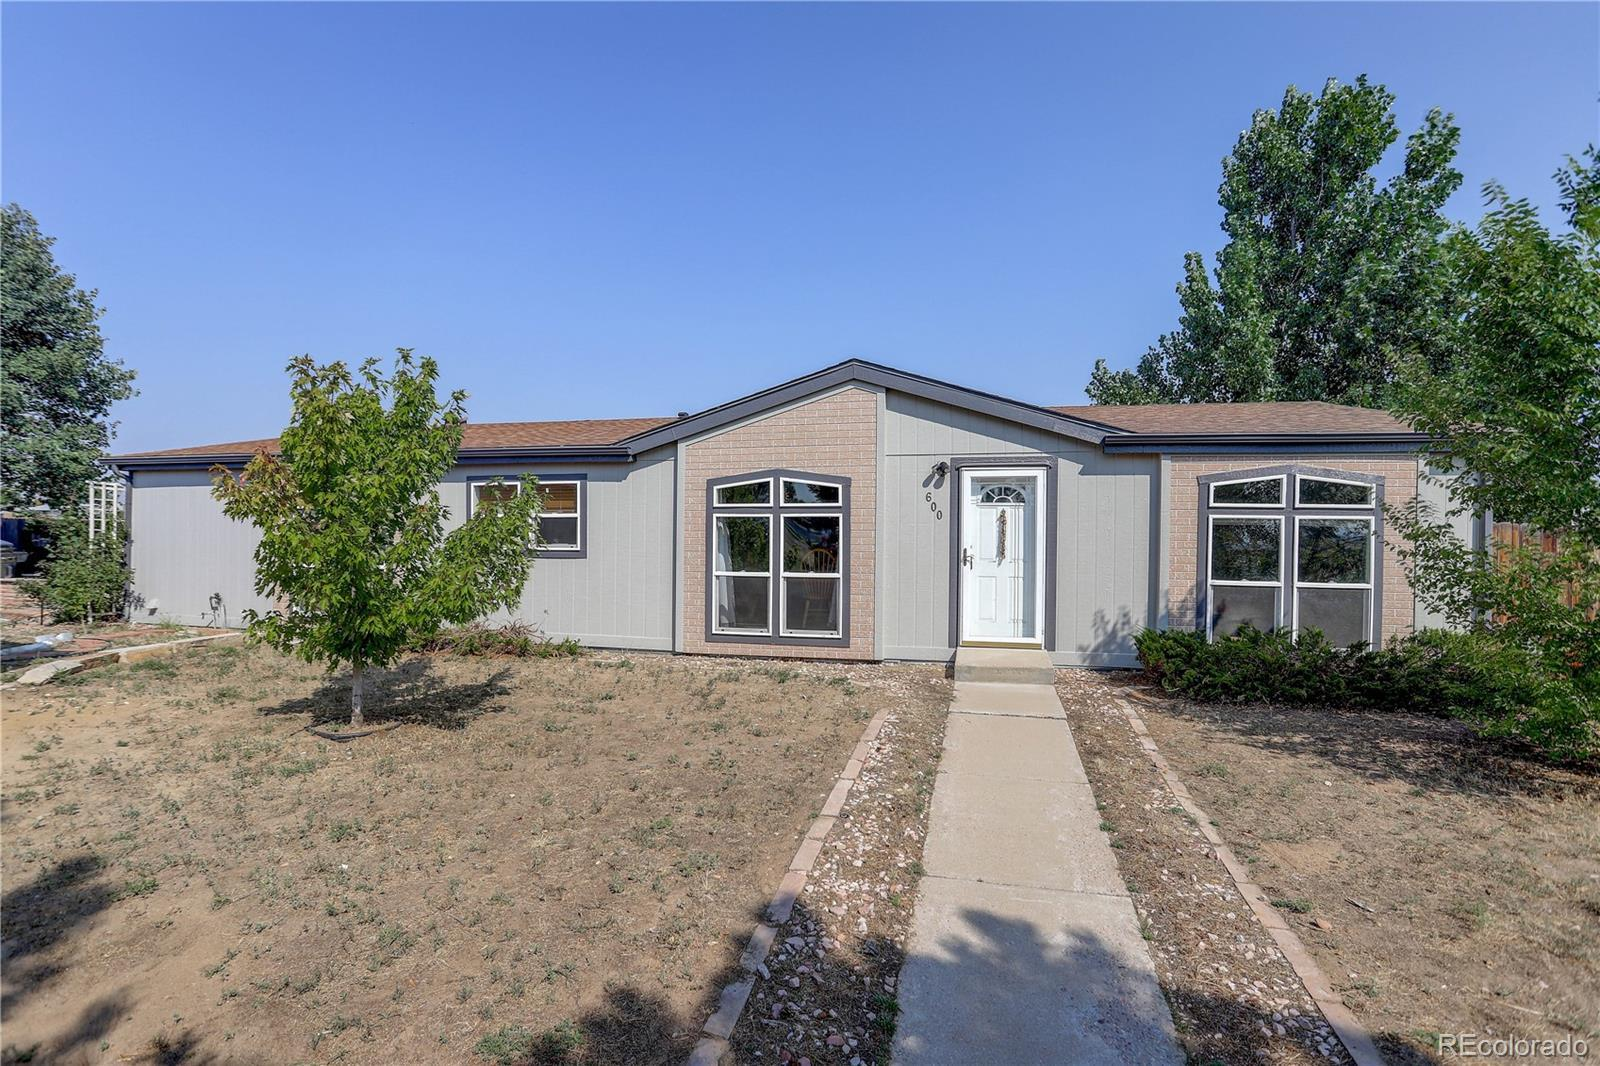 600 Willow Drive, Lochbuie, CO 80603 - #: 4030291